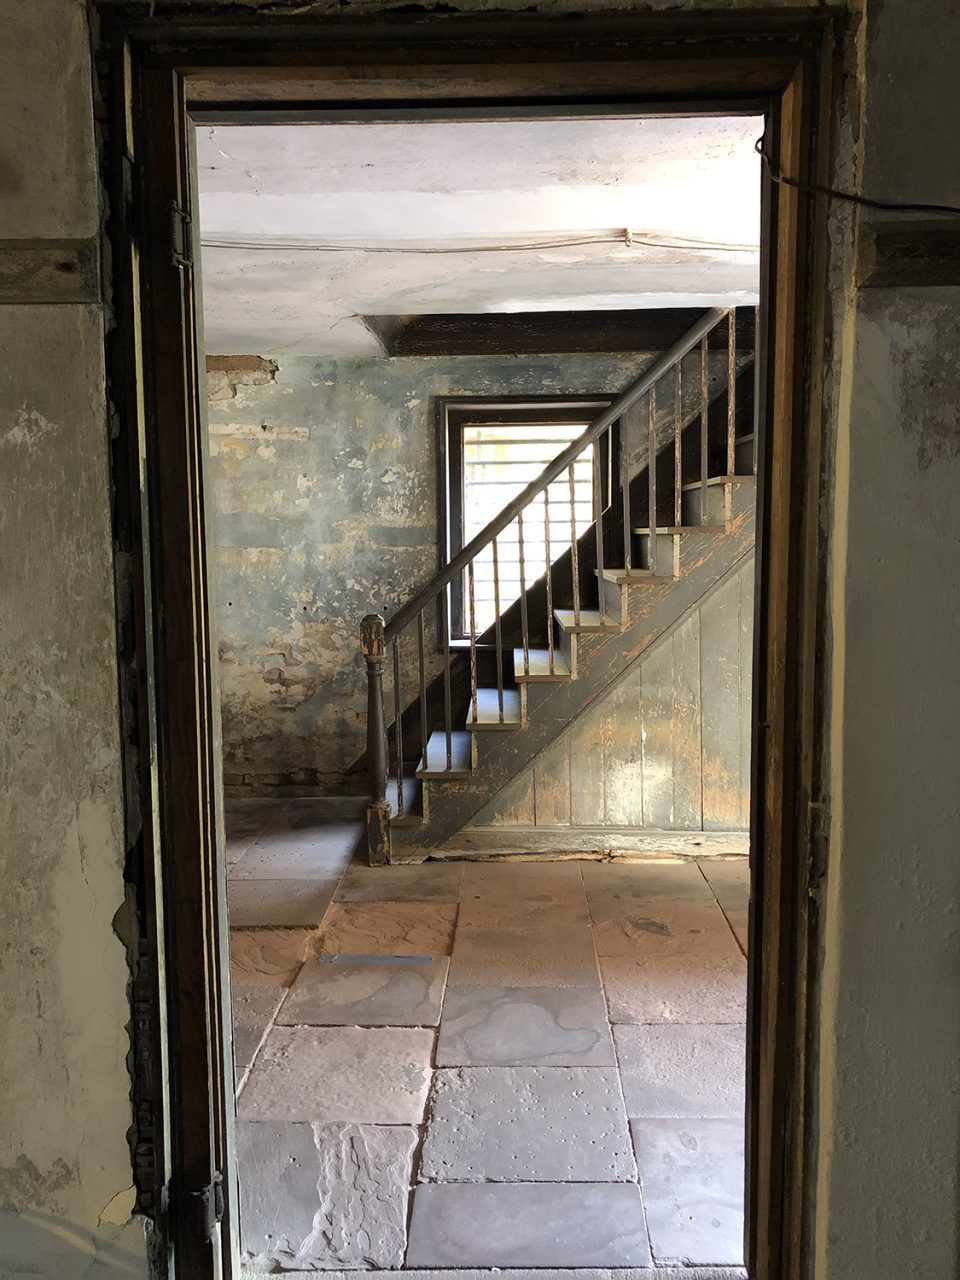 Ground floor interior of an old house in Charleston, South Carolina